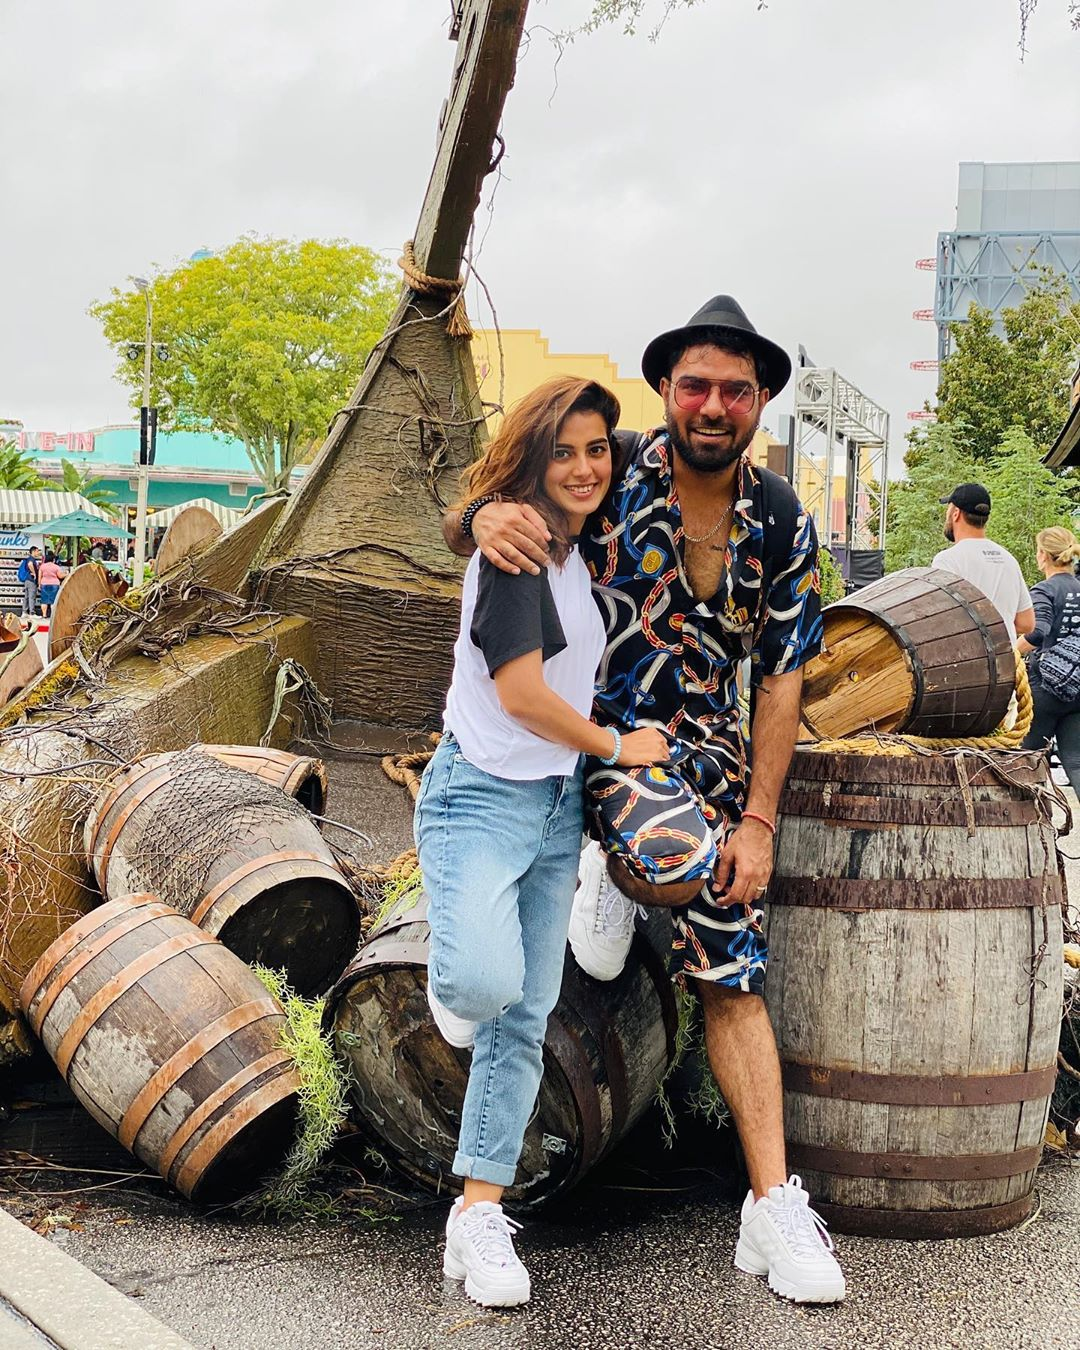 Latest Clicks of Yasir Hussain and Iqra Aziz from USA